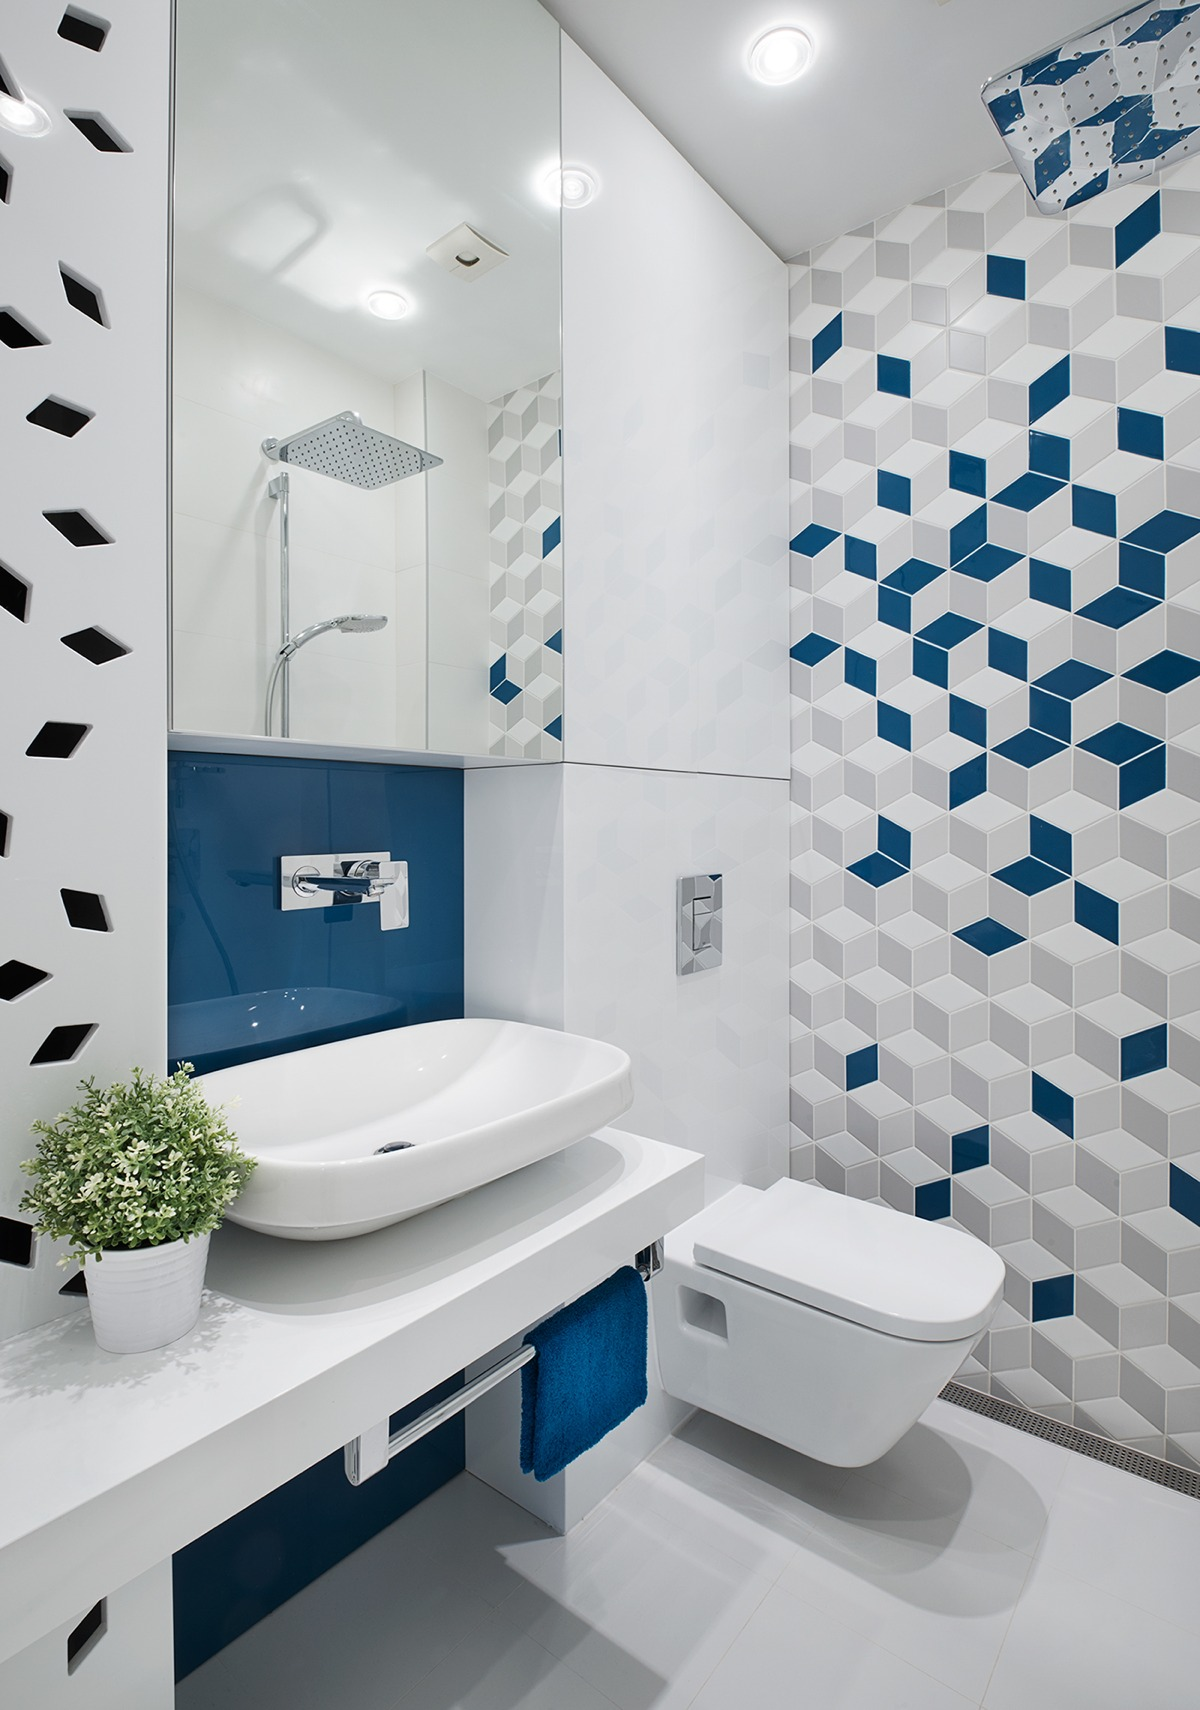 Creative Geometric Bathroom Tile - A mid century inspired apartment with modern geometric accents